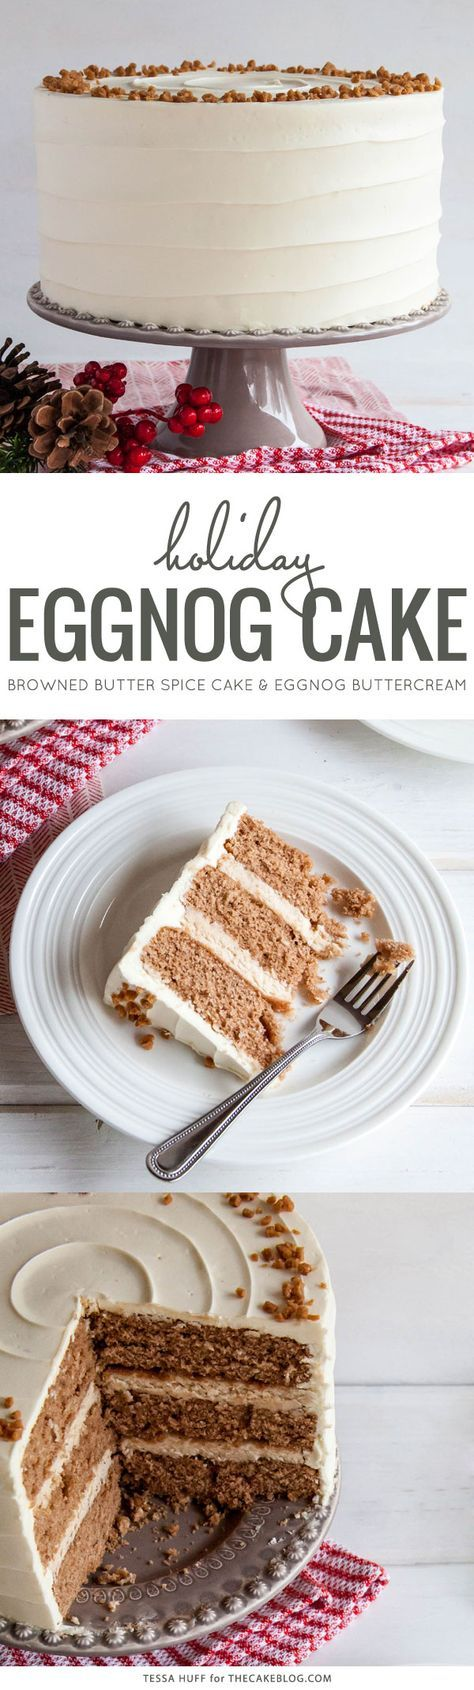 Eggnog Cake! A browned butter spice cake with eggnog buttercream, perfect for holiday entertaining & Christmas dessert   by Tessa Huff for http://TheCakeBlog.com